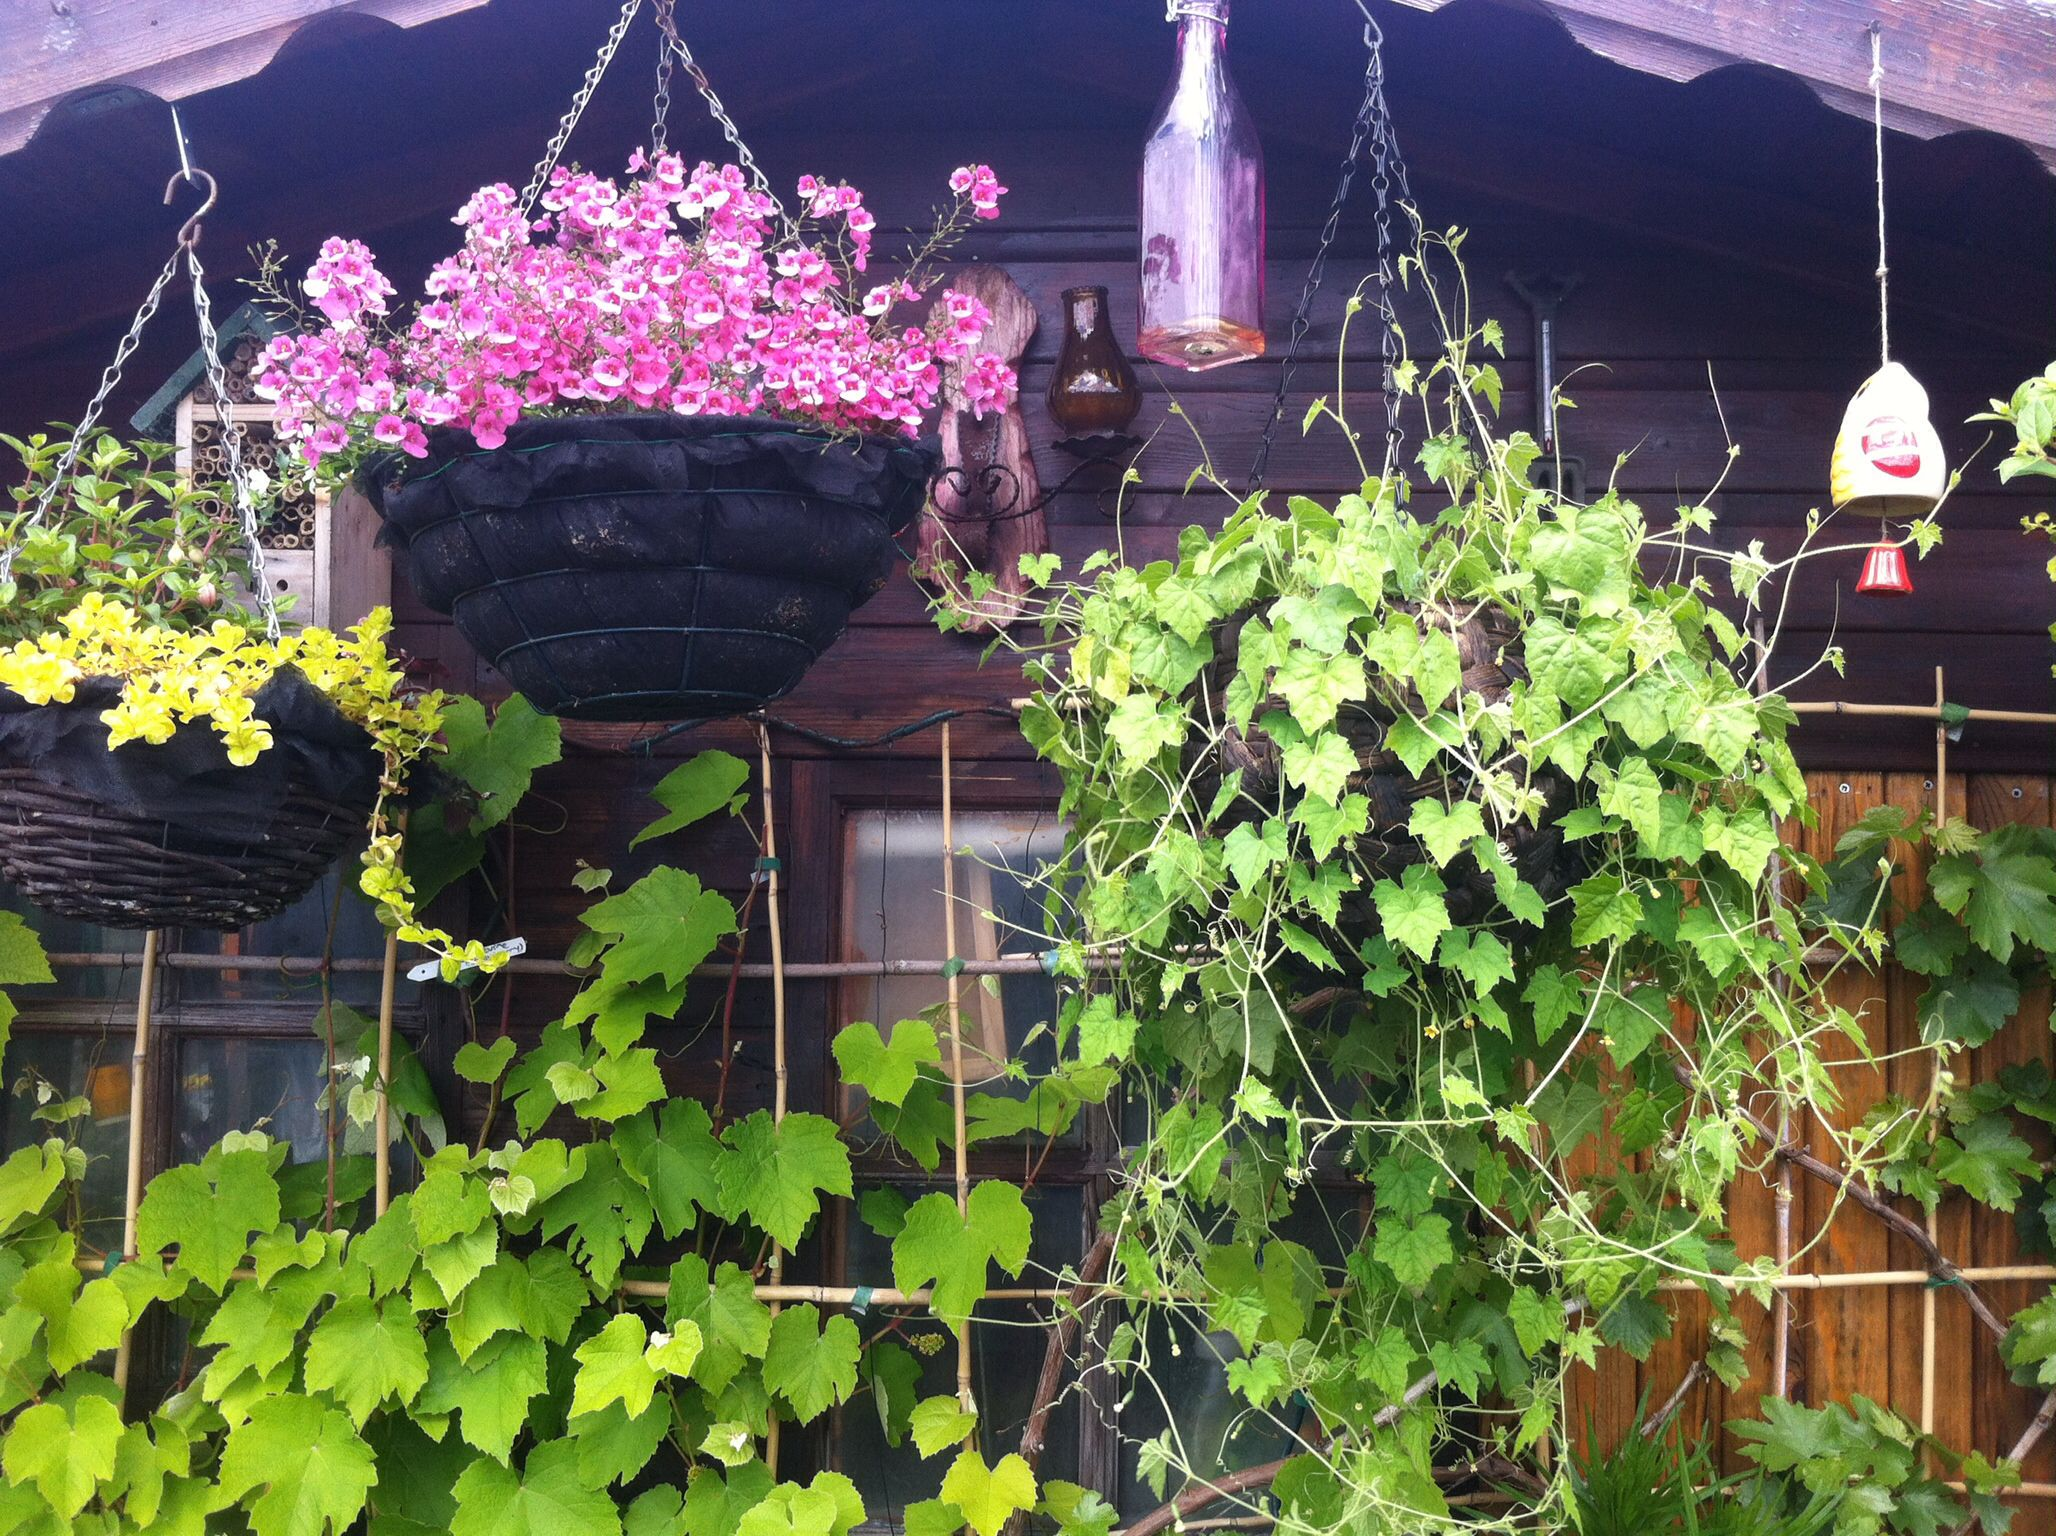 Cucamelons In Hanging Basket